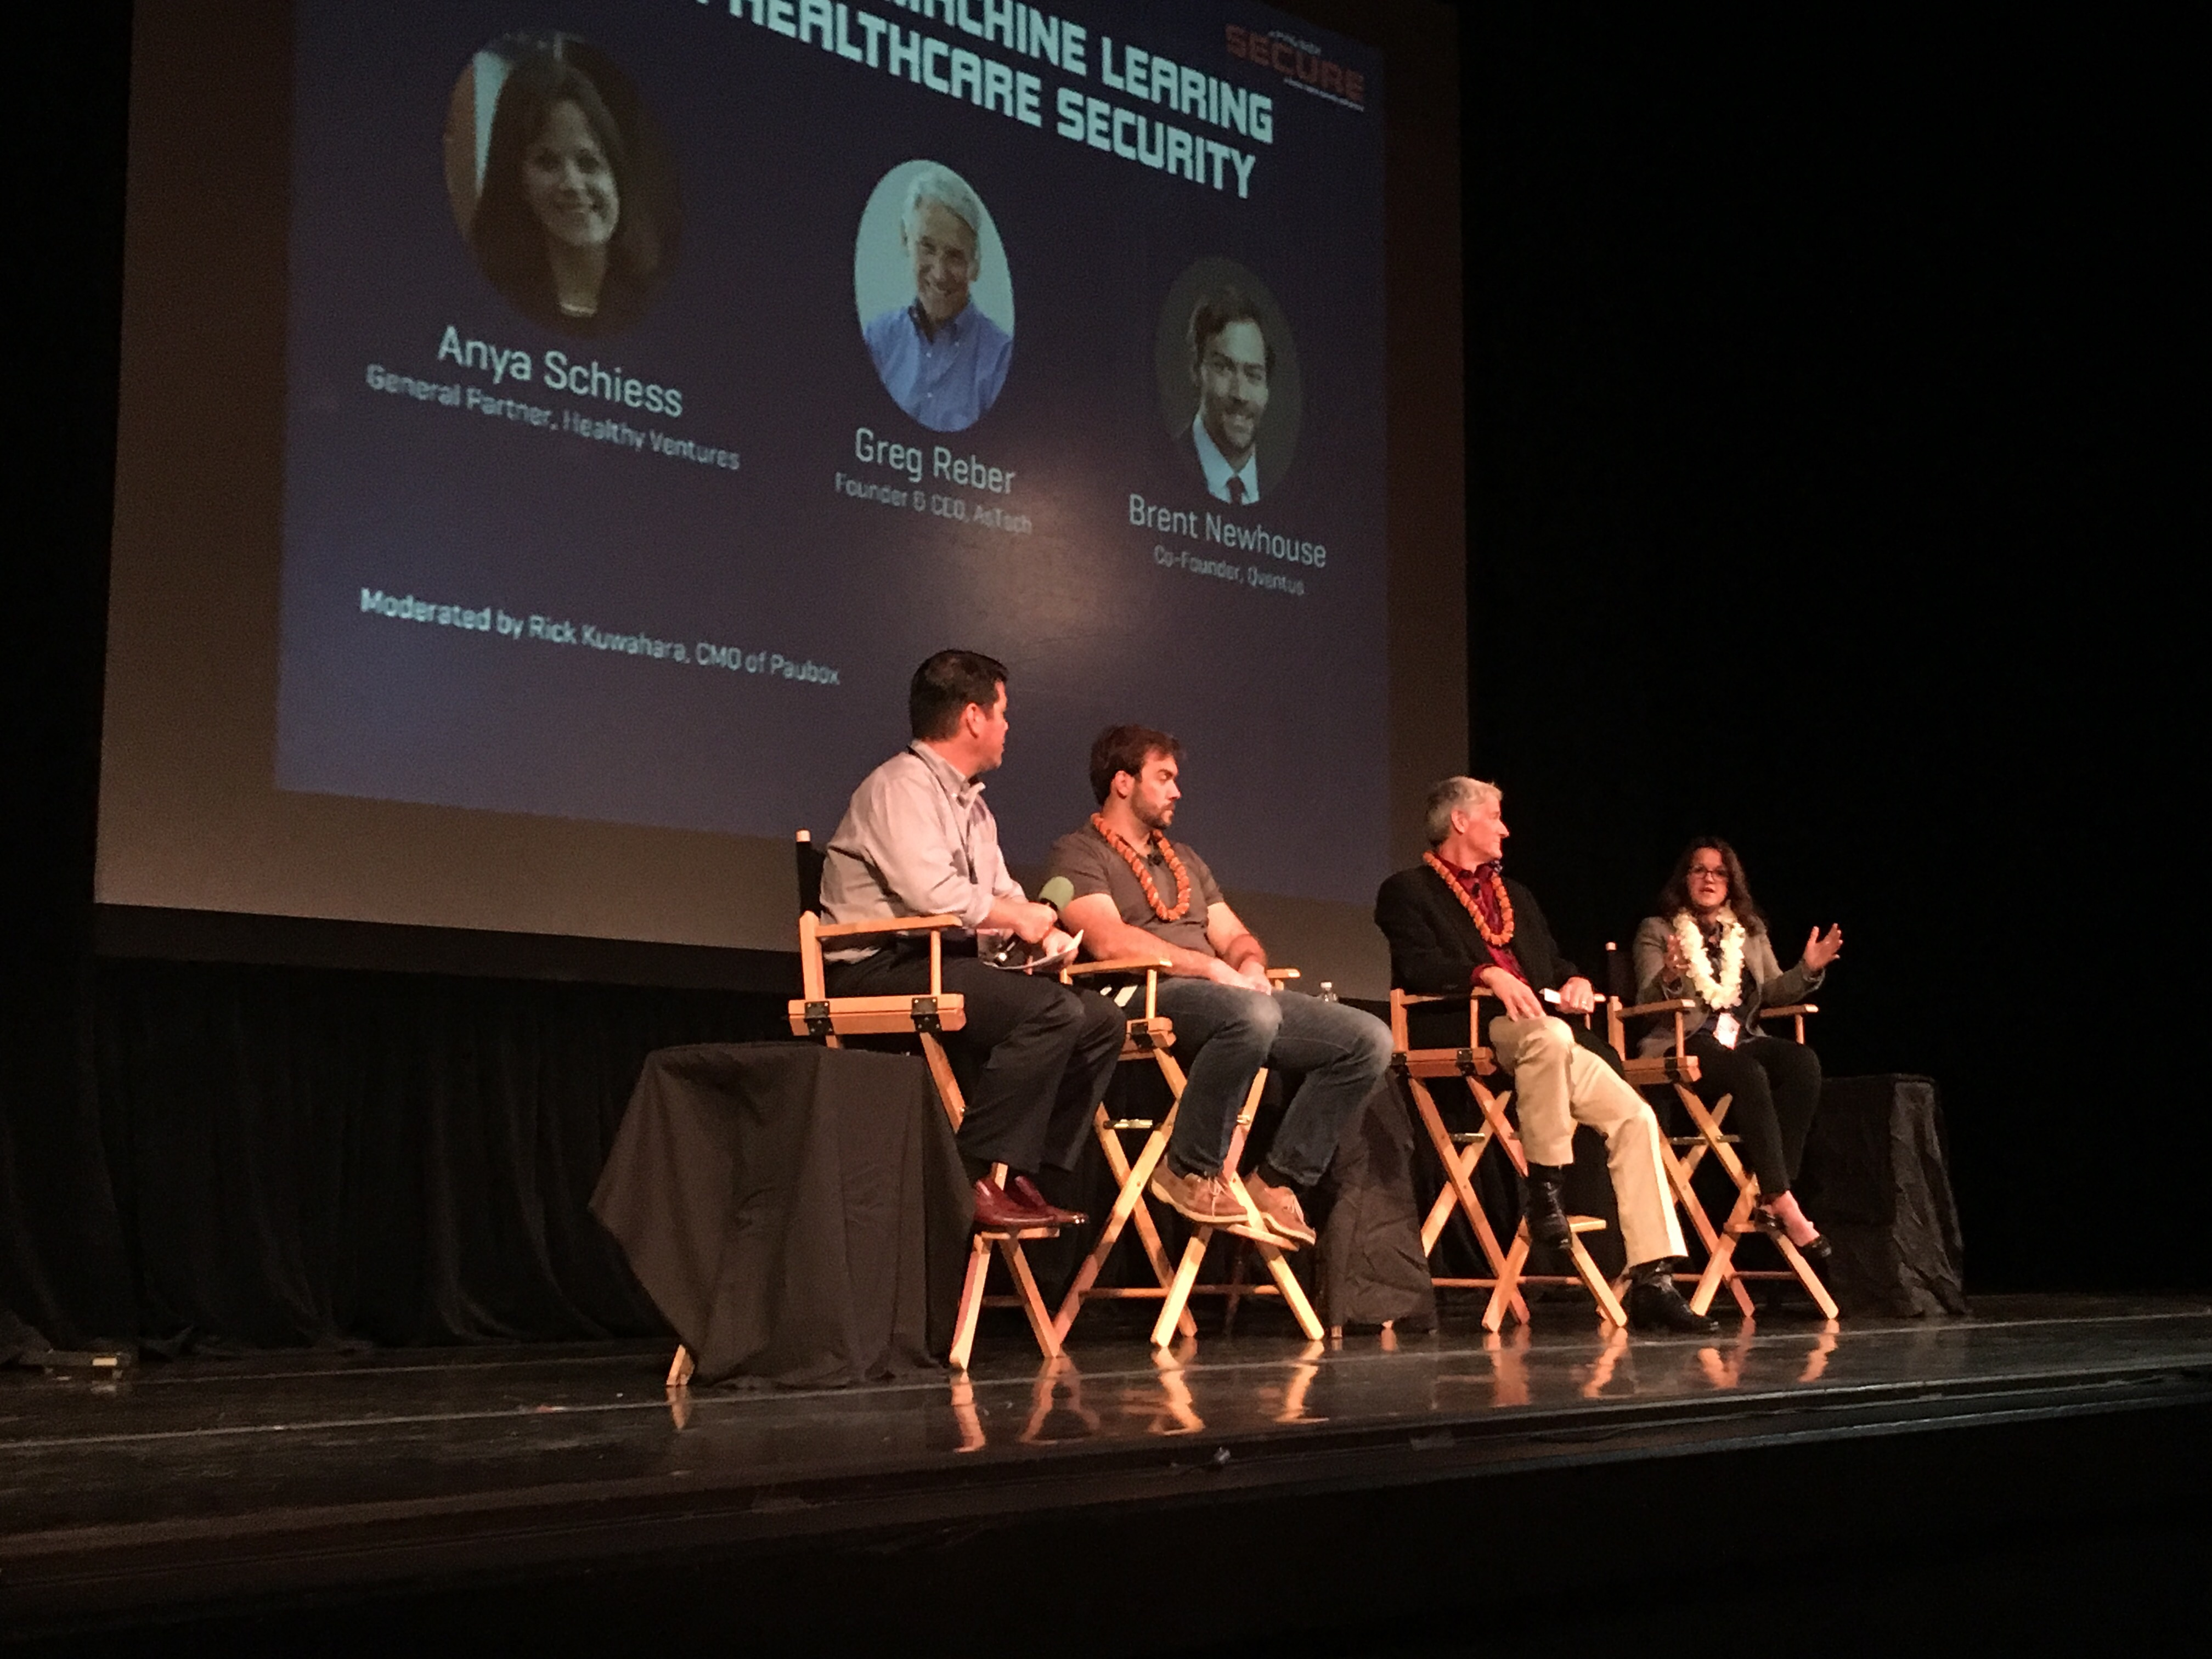 First Annual Paubox SECURE Conference Tackles Big Digital